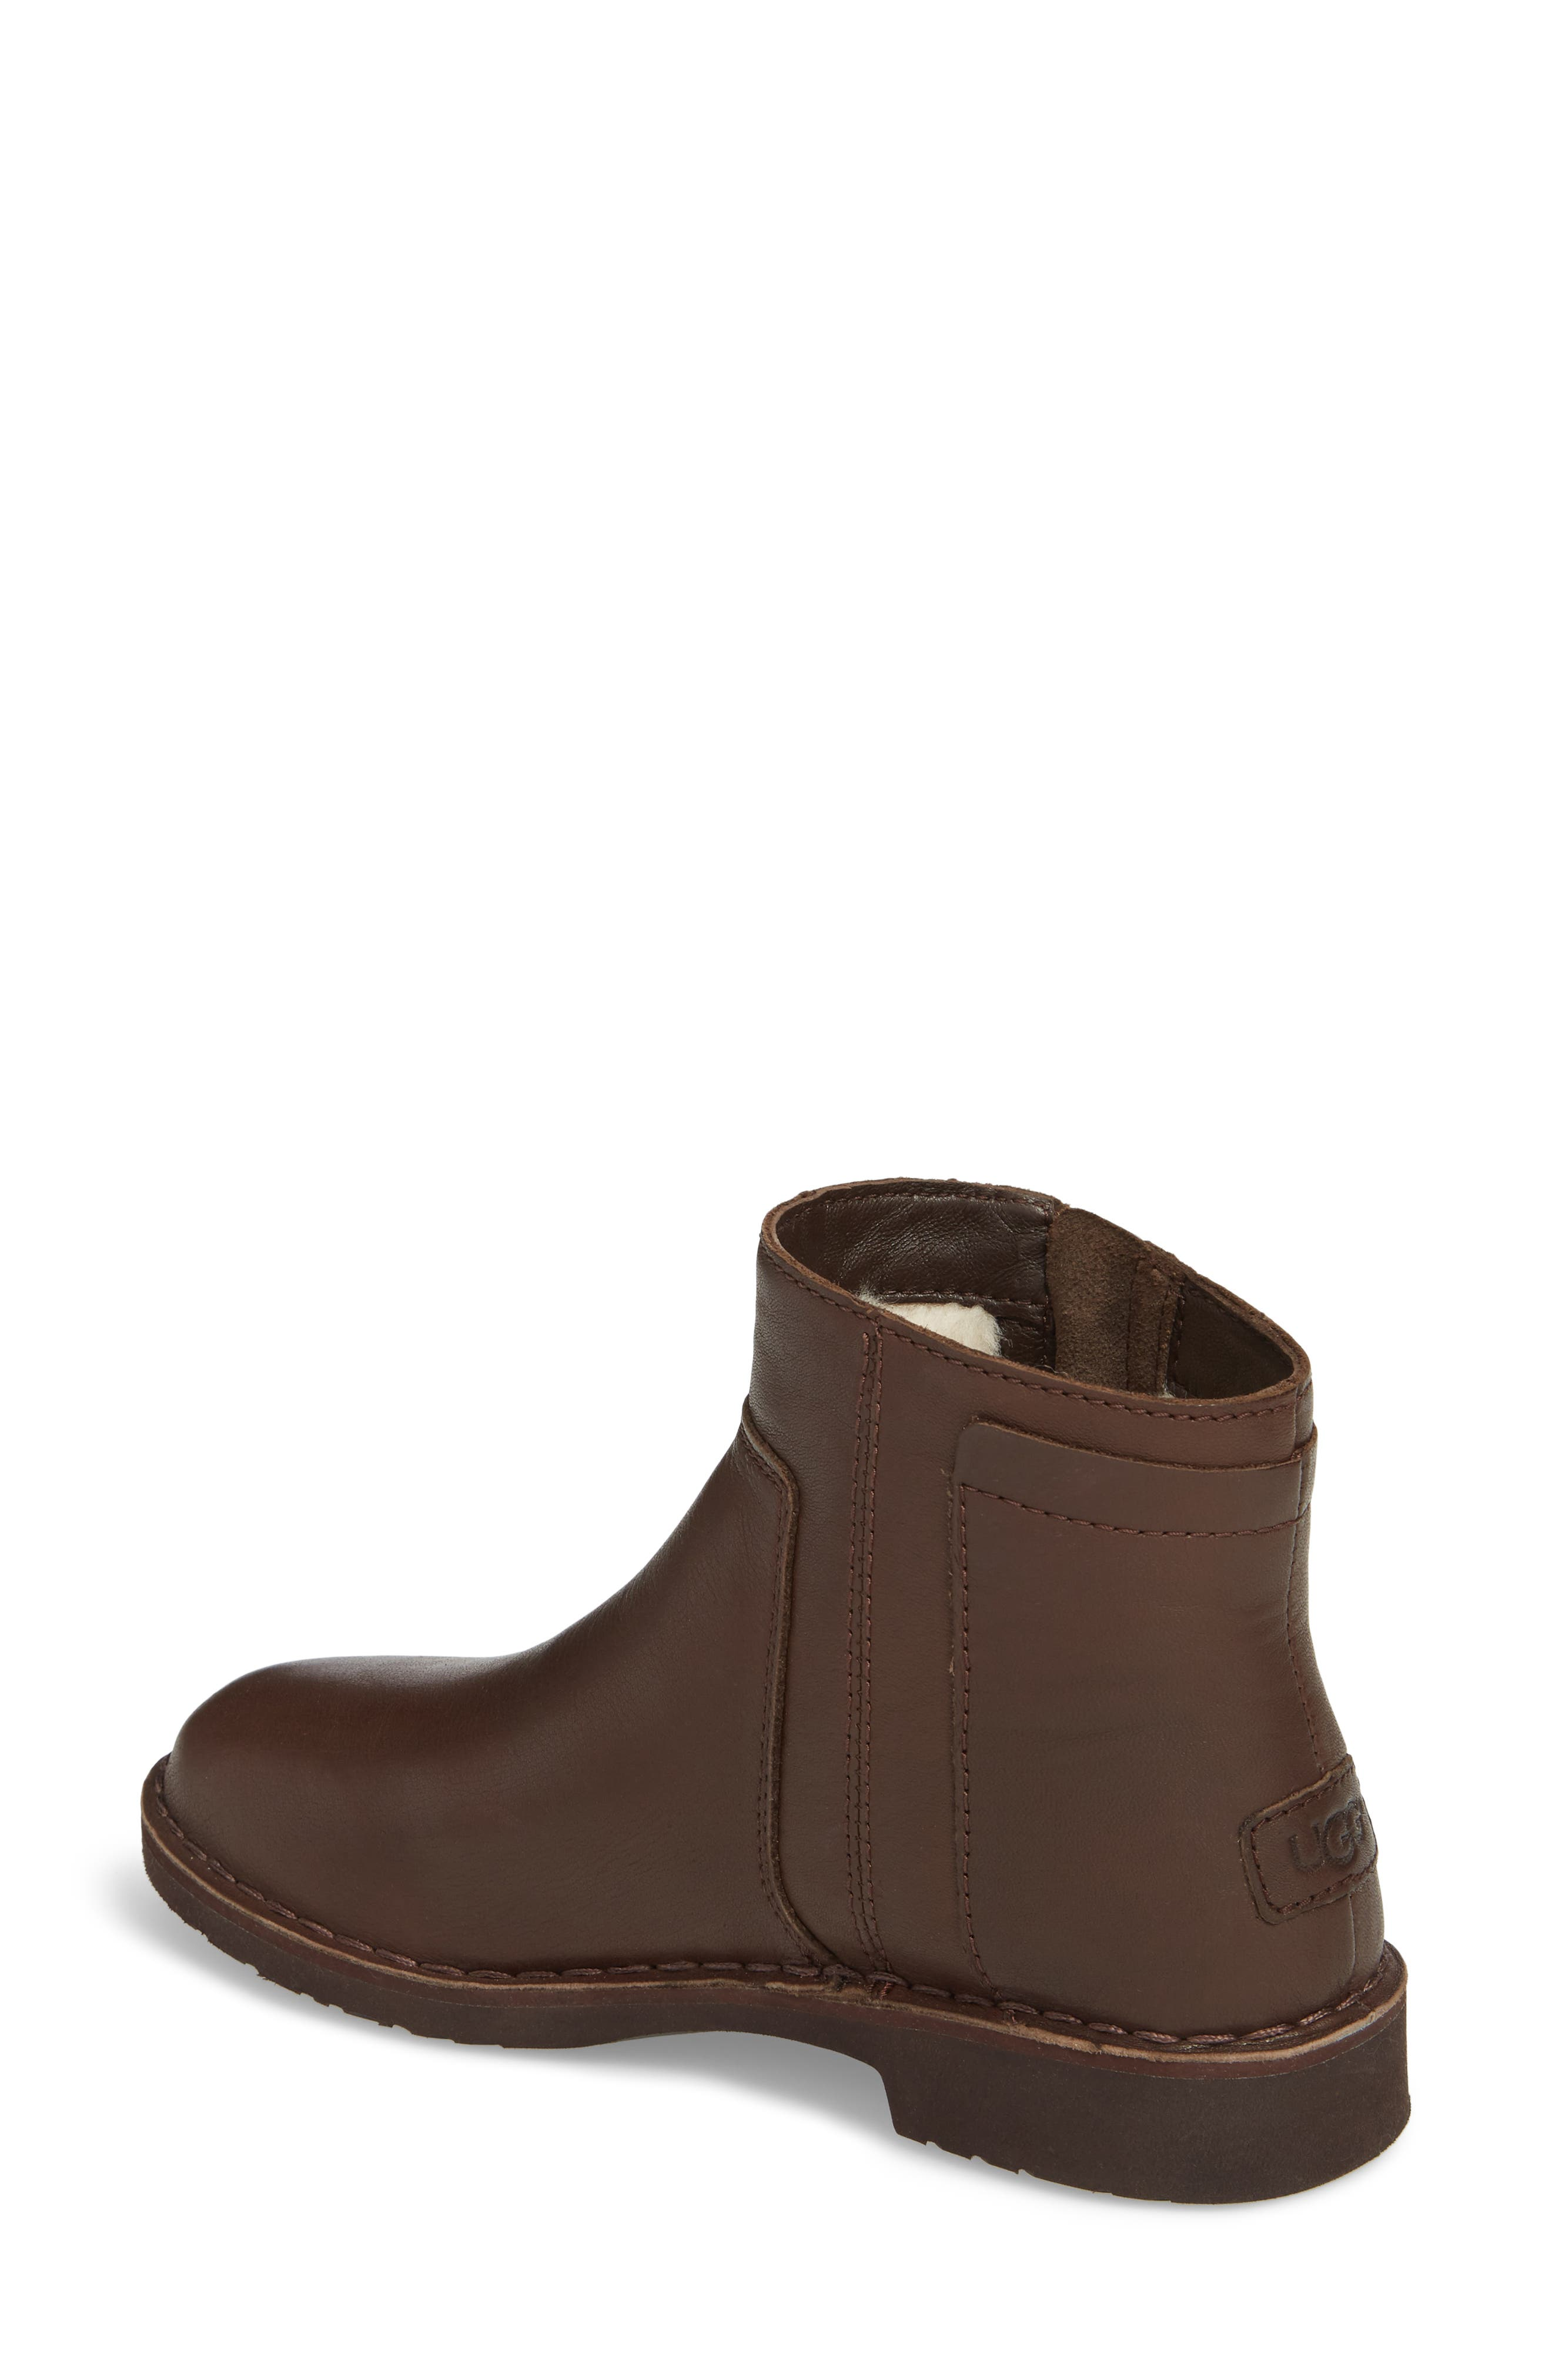 Rea Bootie,                             Alternate thumbnail 2, color,                             Stout Leather